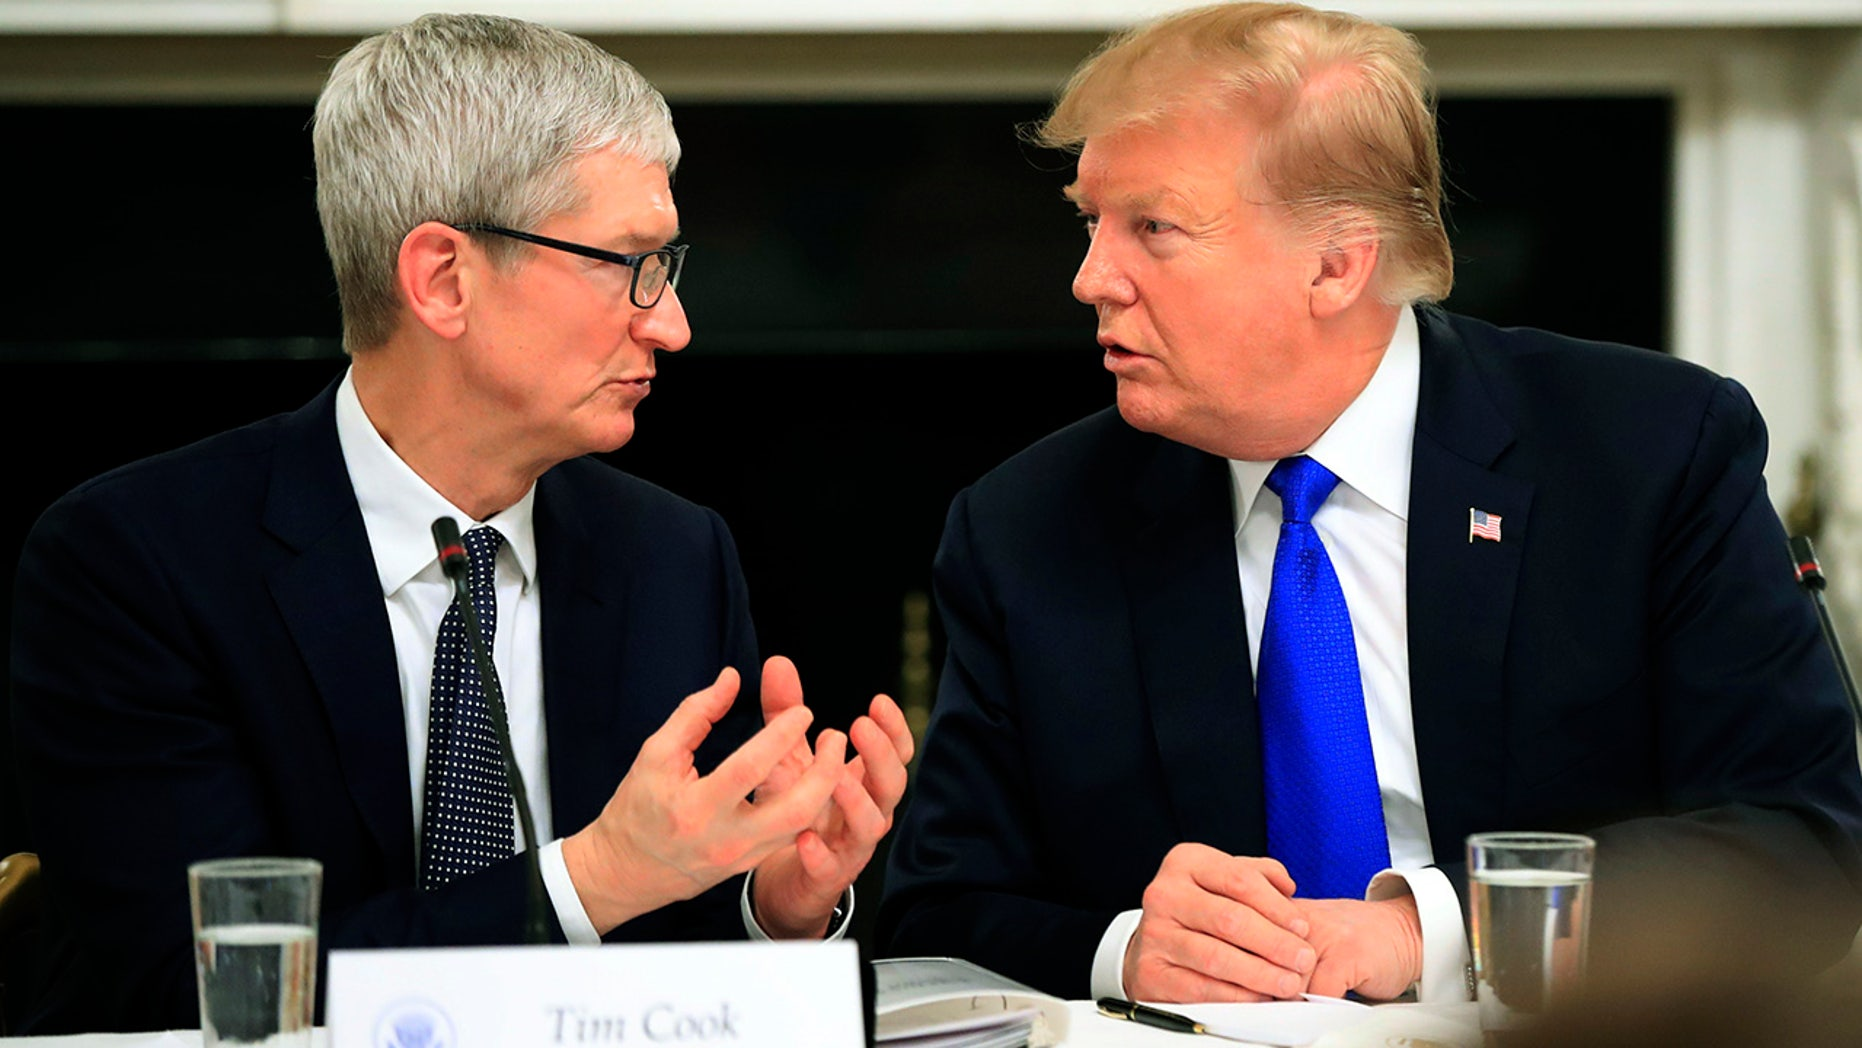 President Donald Trump talks to Apple Inc. CEO Tim Cook during the American Workforce Policy Advisory Board's first meeting in the State Dining Room of the White House in Washington, Wednesday, March 6, 2019. (AP Photo/Manuel Balce Ceneta)